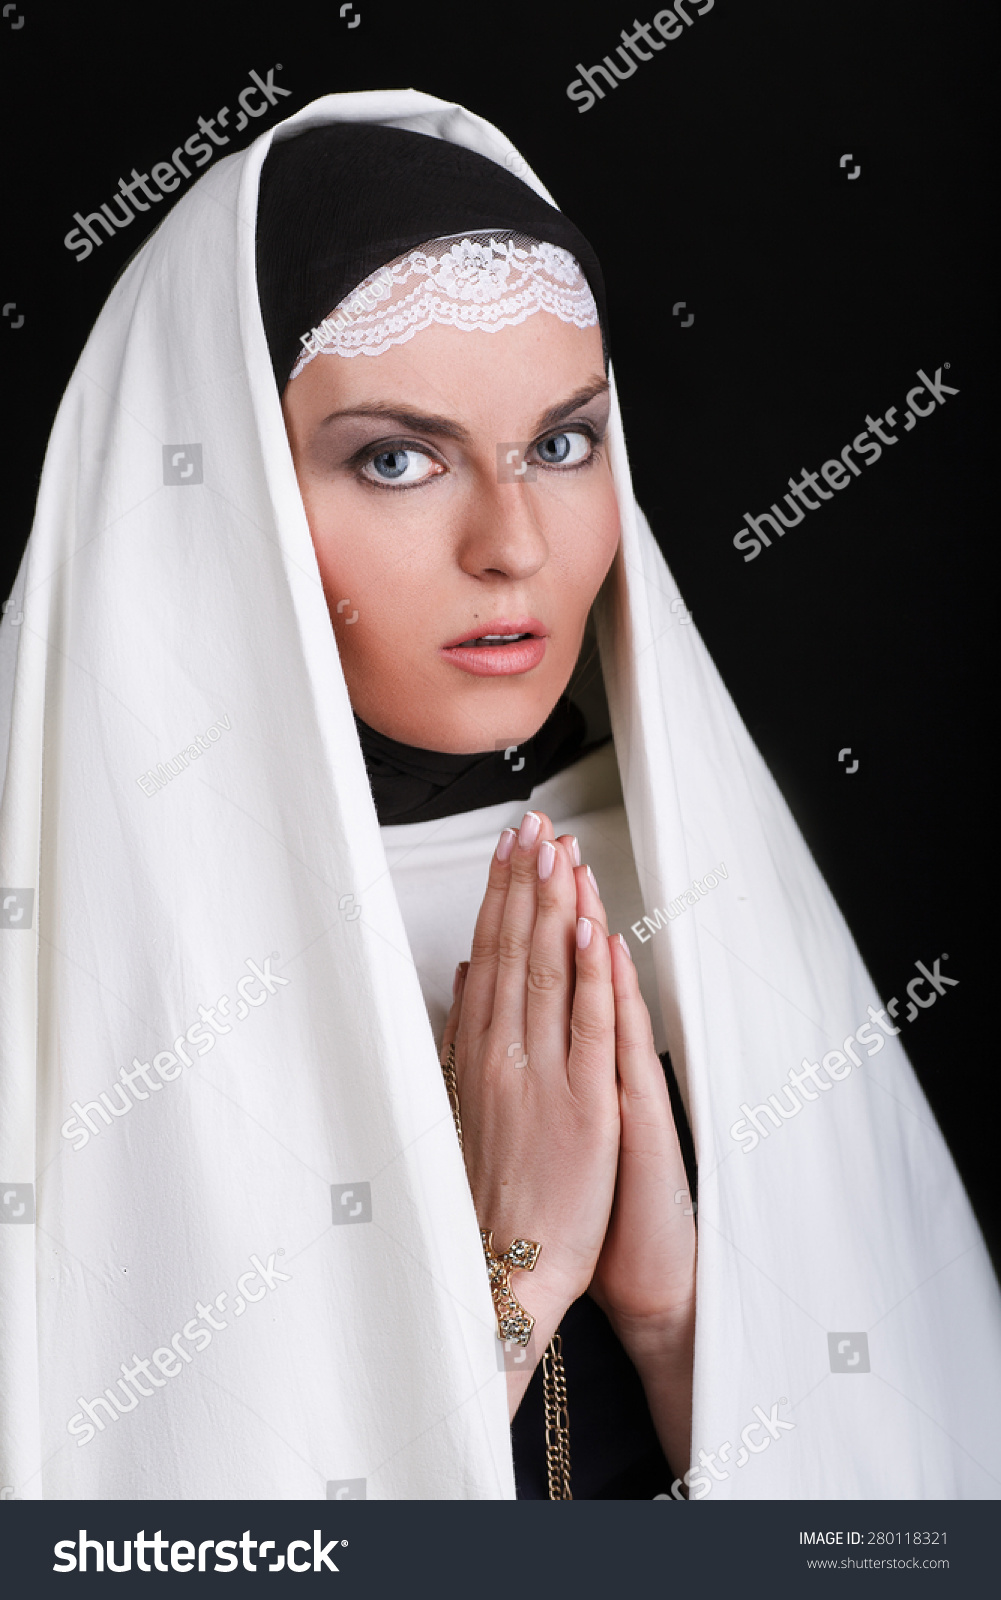 front portrait young beautiful nun stock photo & image (royalty-free